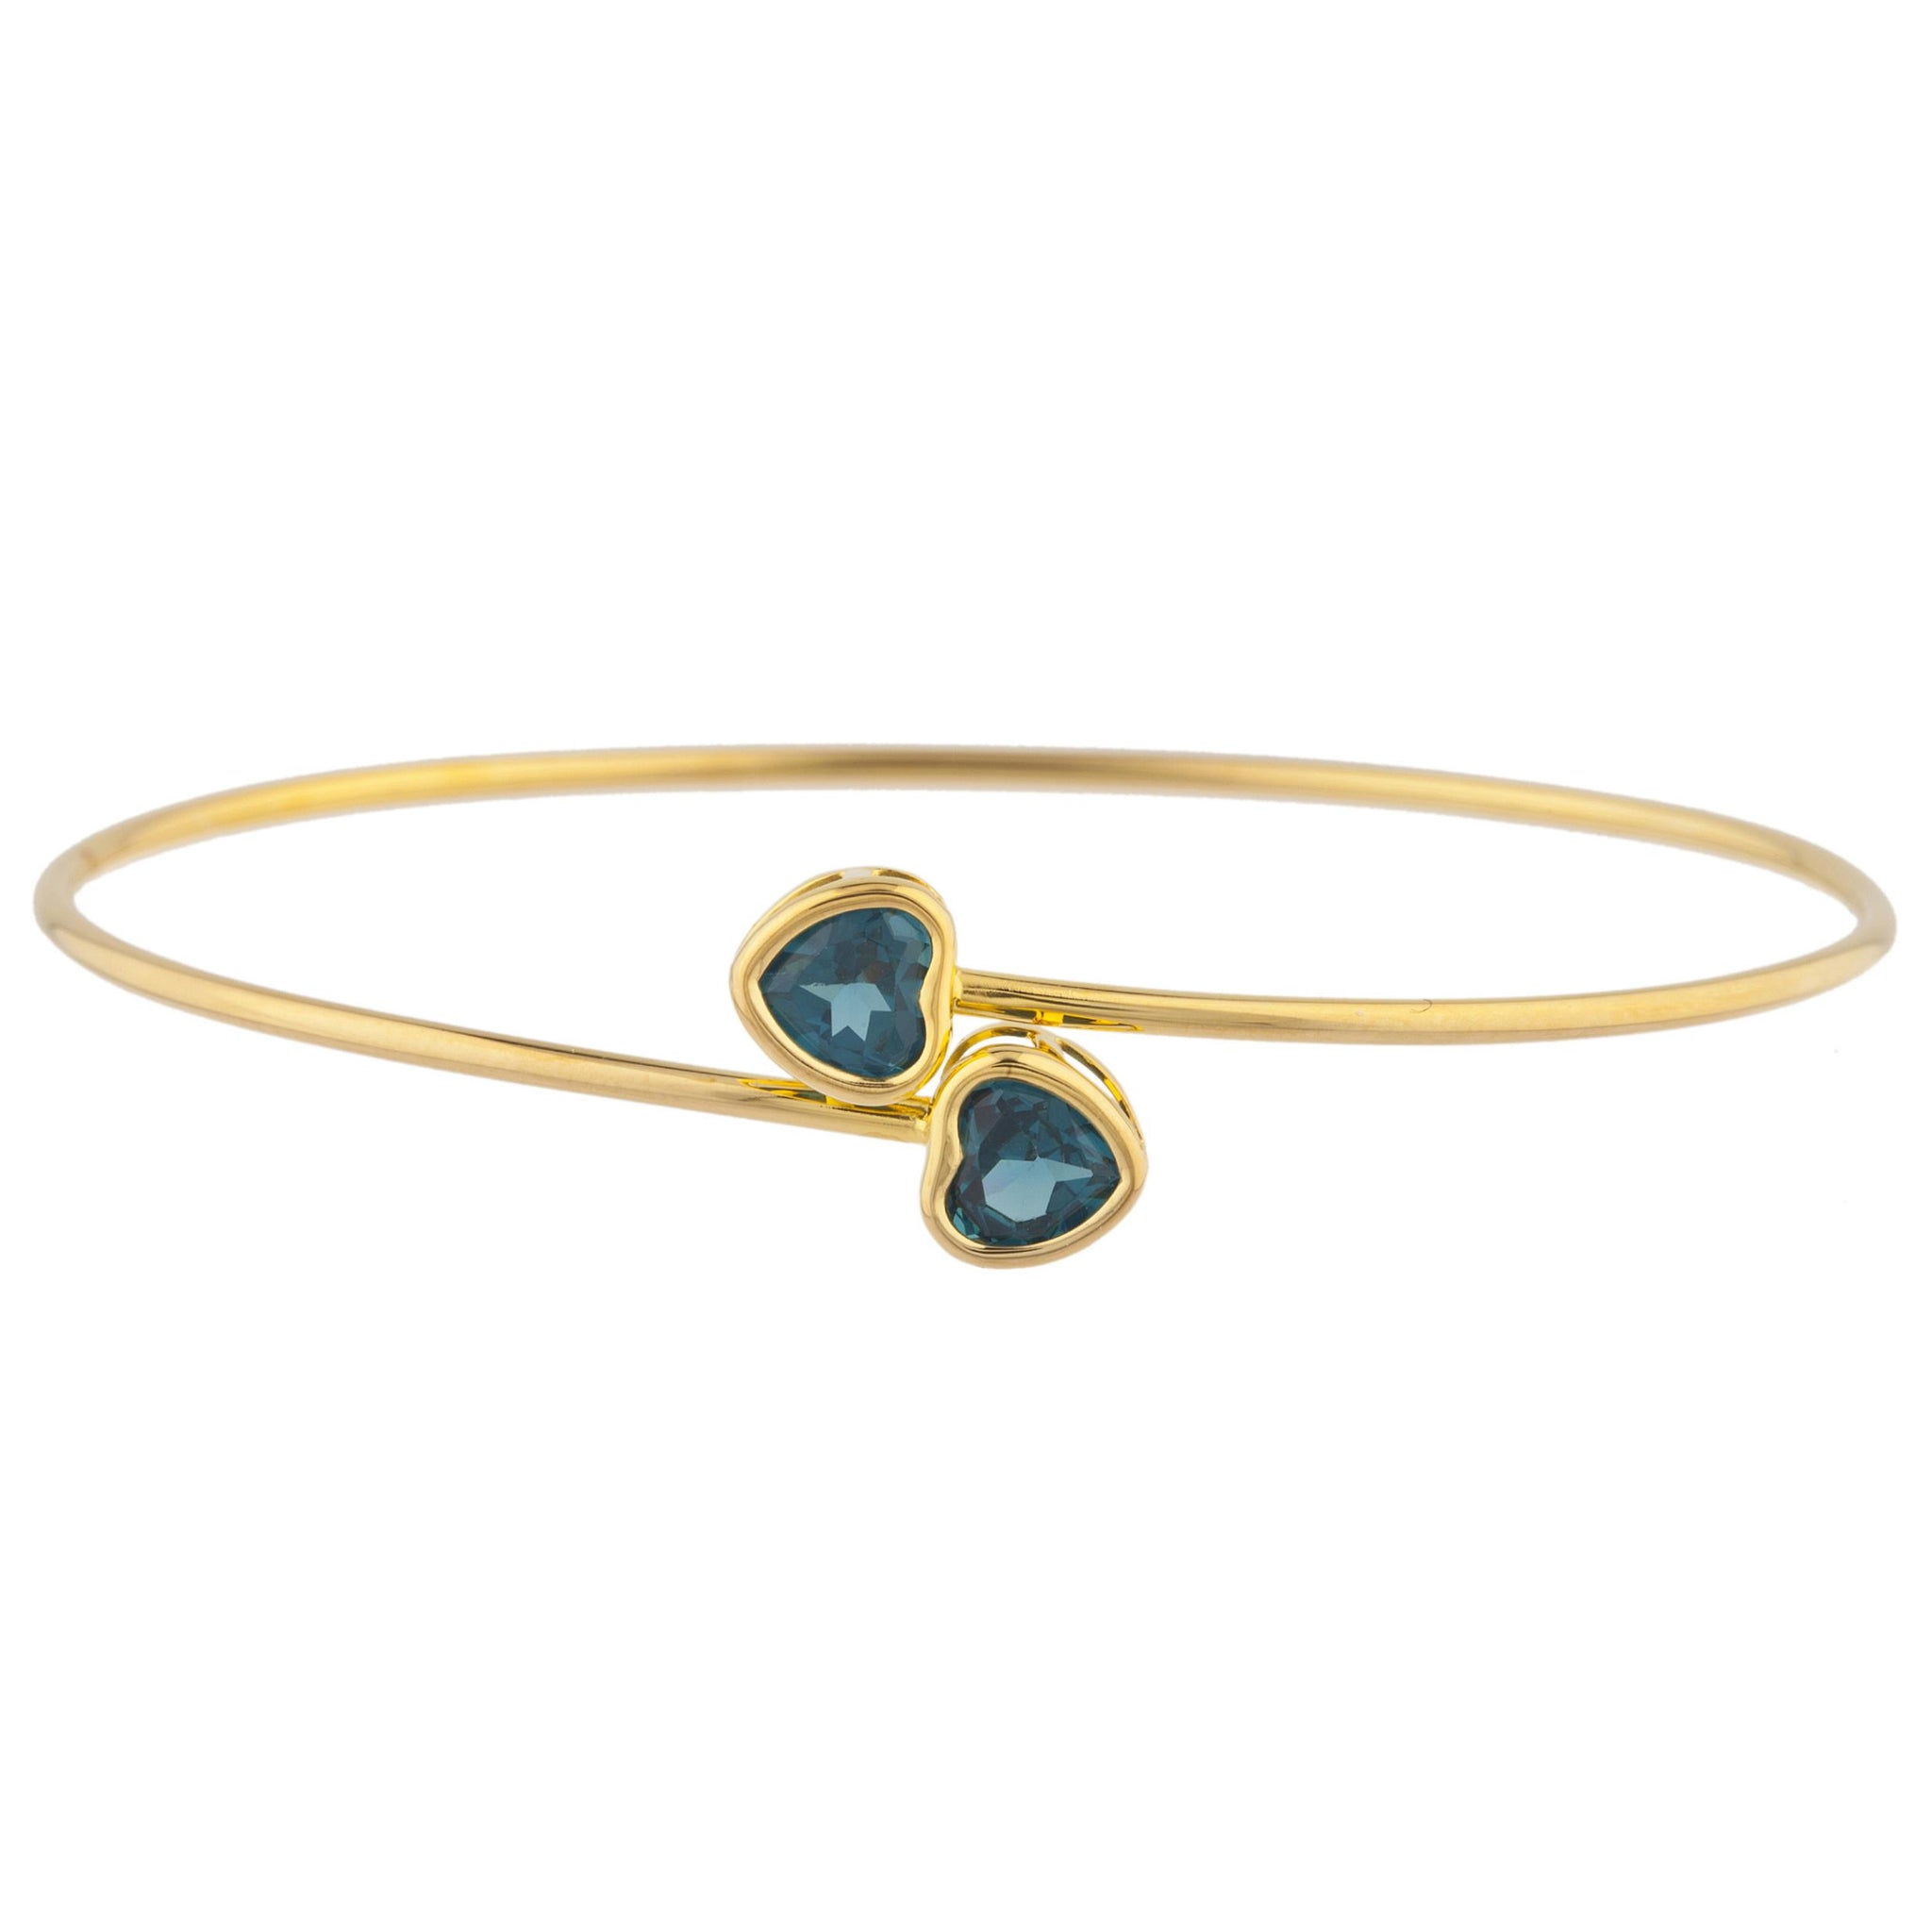 14Kt Yellow Gold Plated London Blue Topaz Heart Bezel Bangle Bracelet